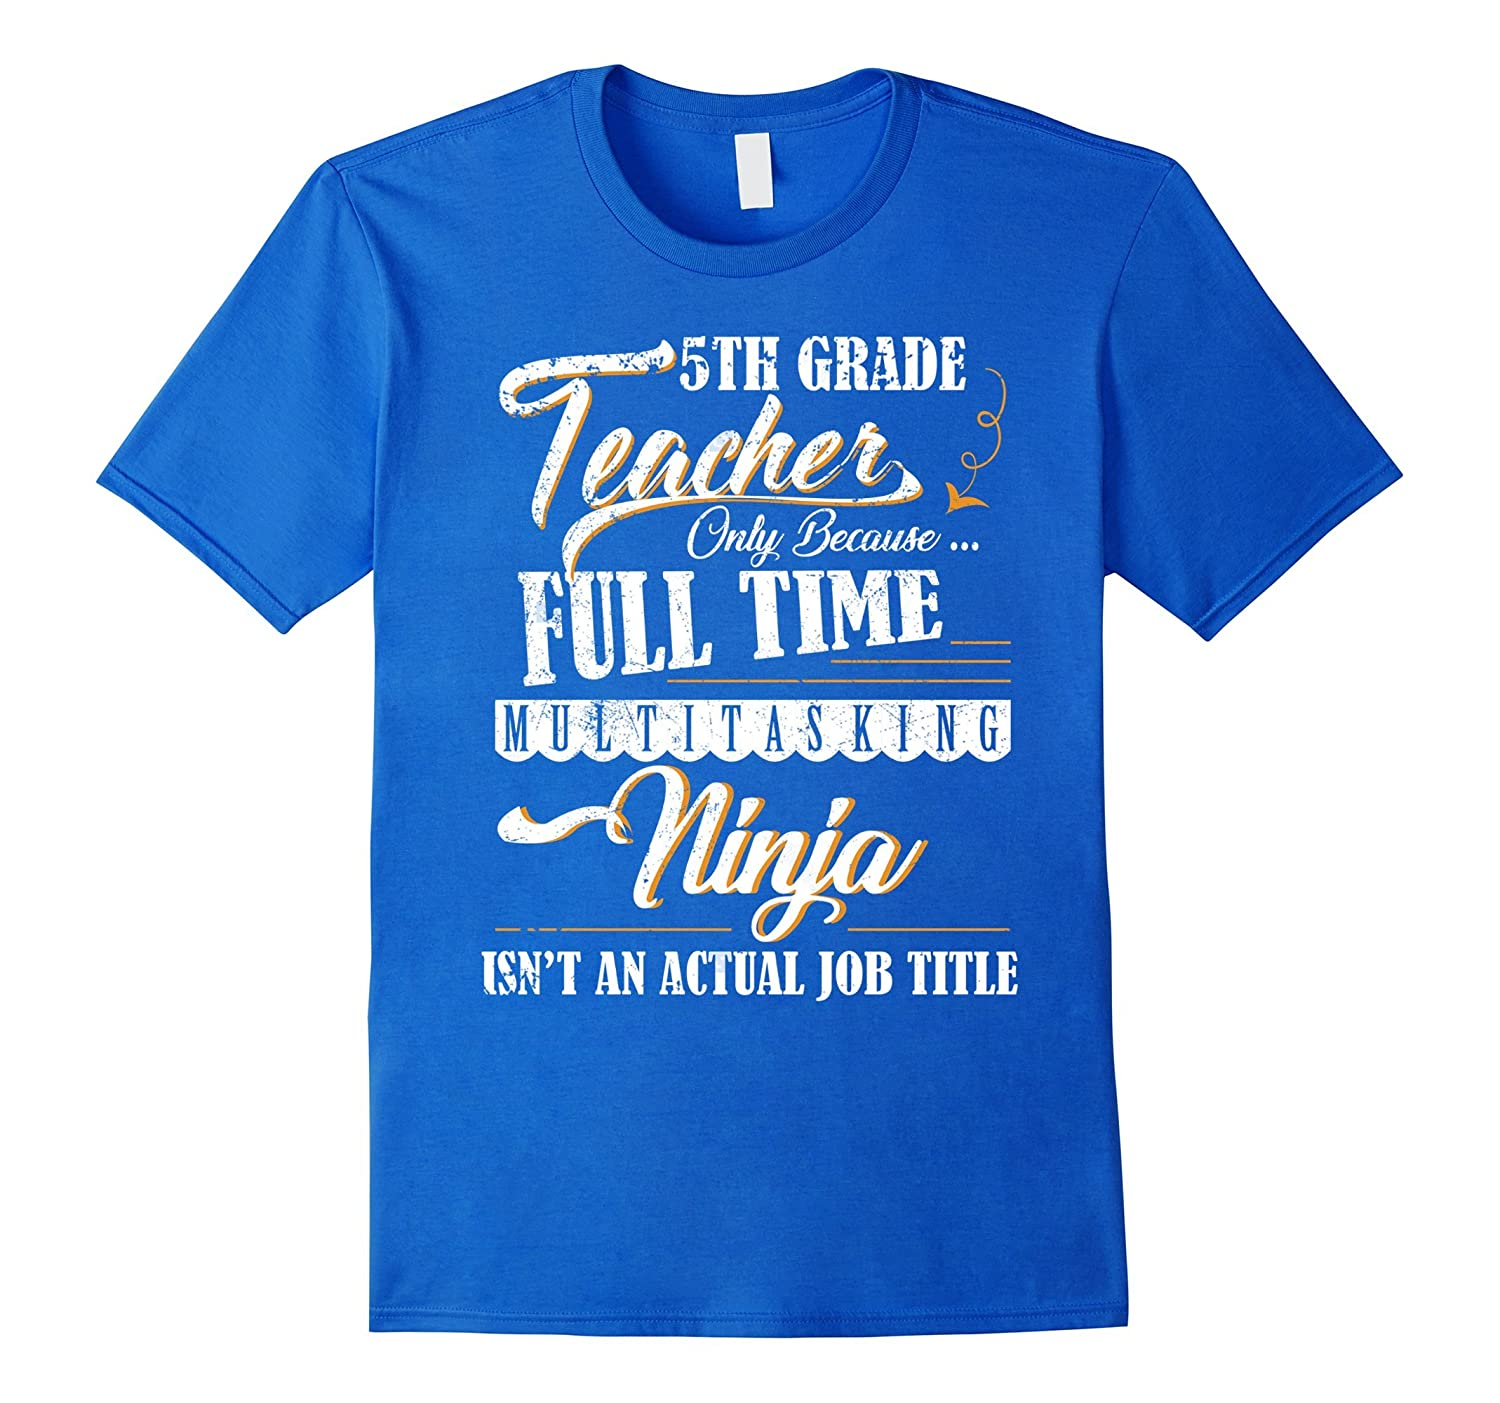 5th Grade Teacher Is Not An Actual Job Title T-Shirt